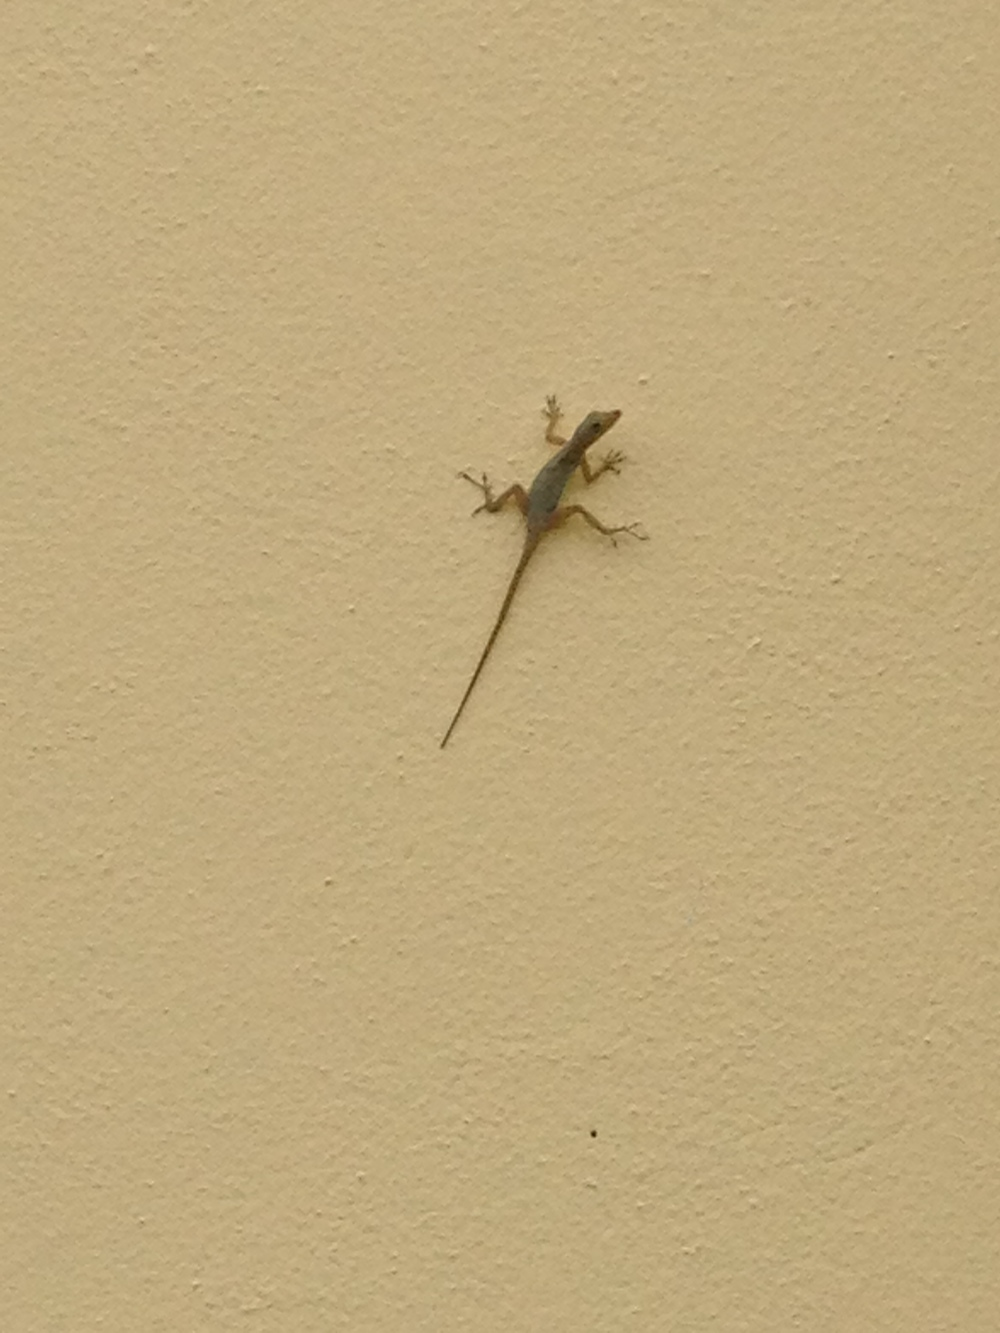 Lots o lizards around!